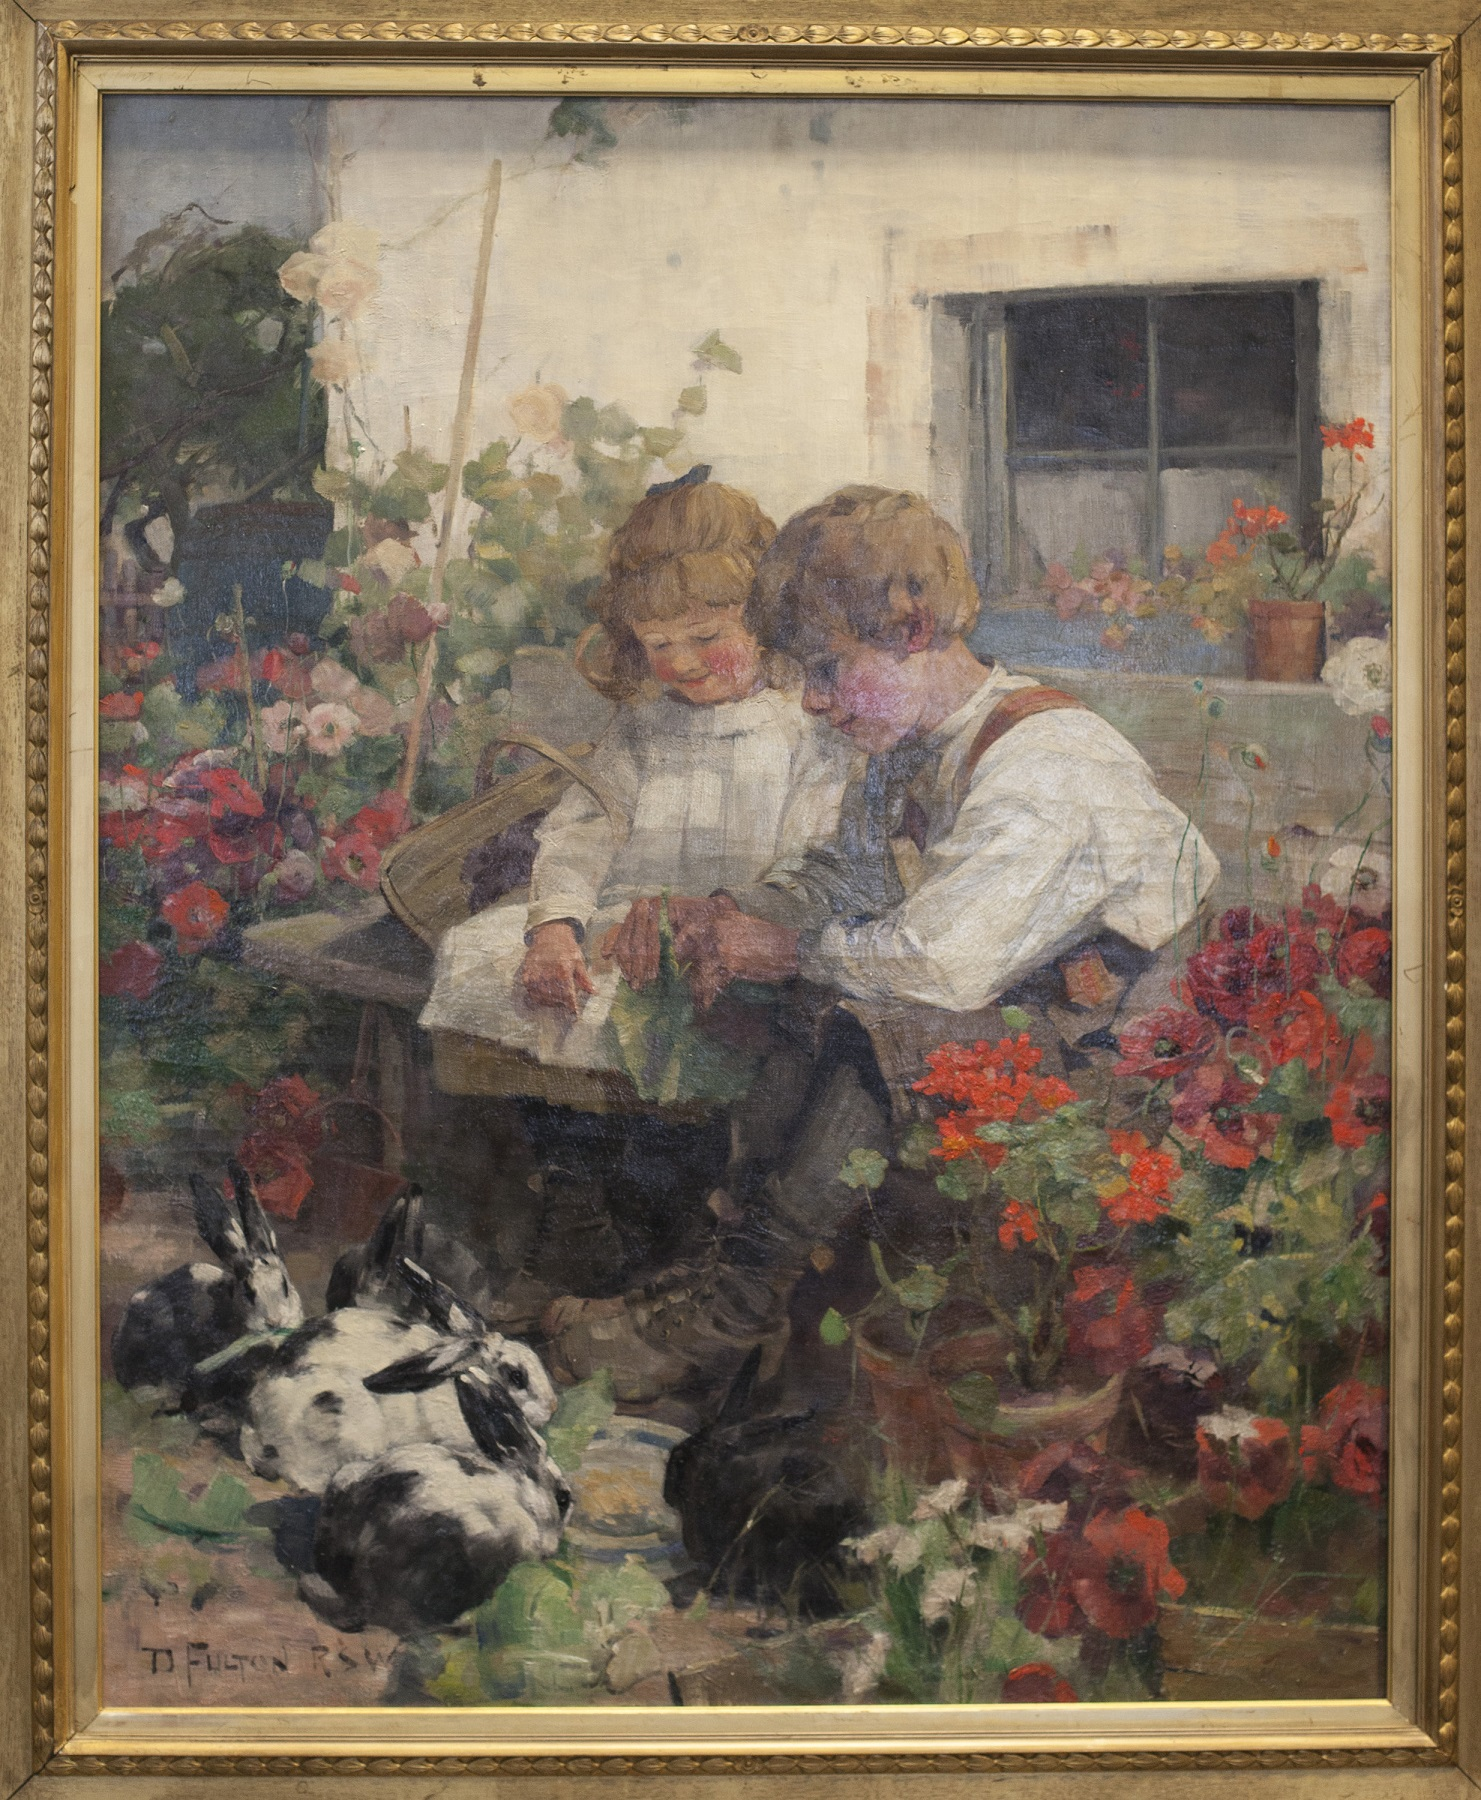 David Fulton's Siblings Feeding Rabbits has returned to Glasgow after 120 years. The painting will auctioned by McTear's on 14th February - 1